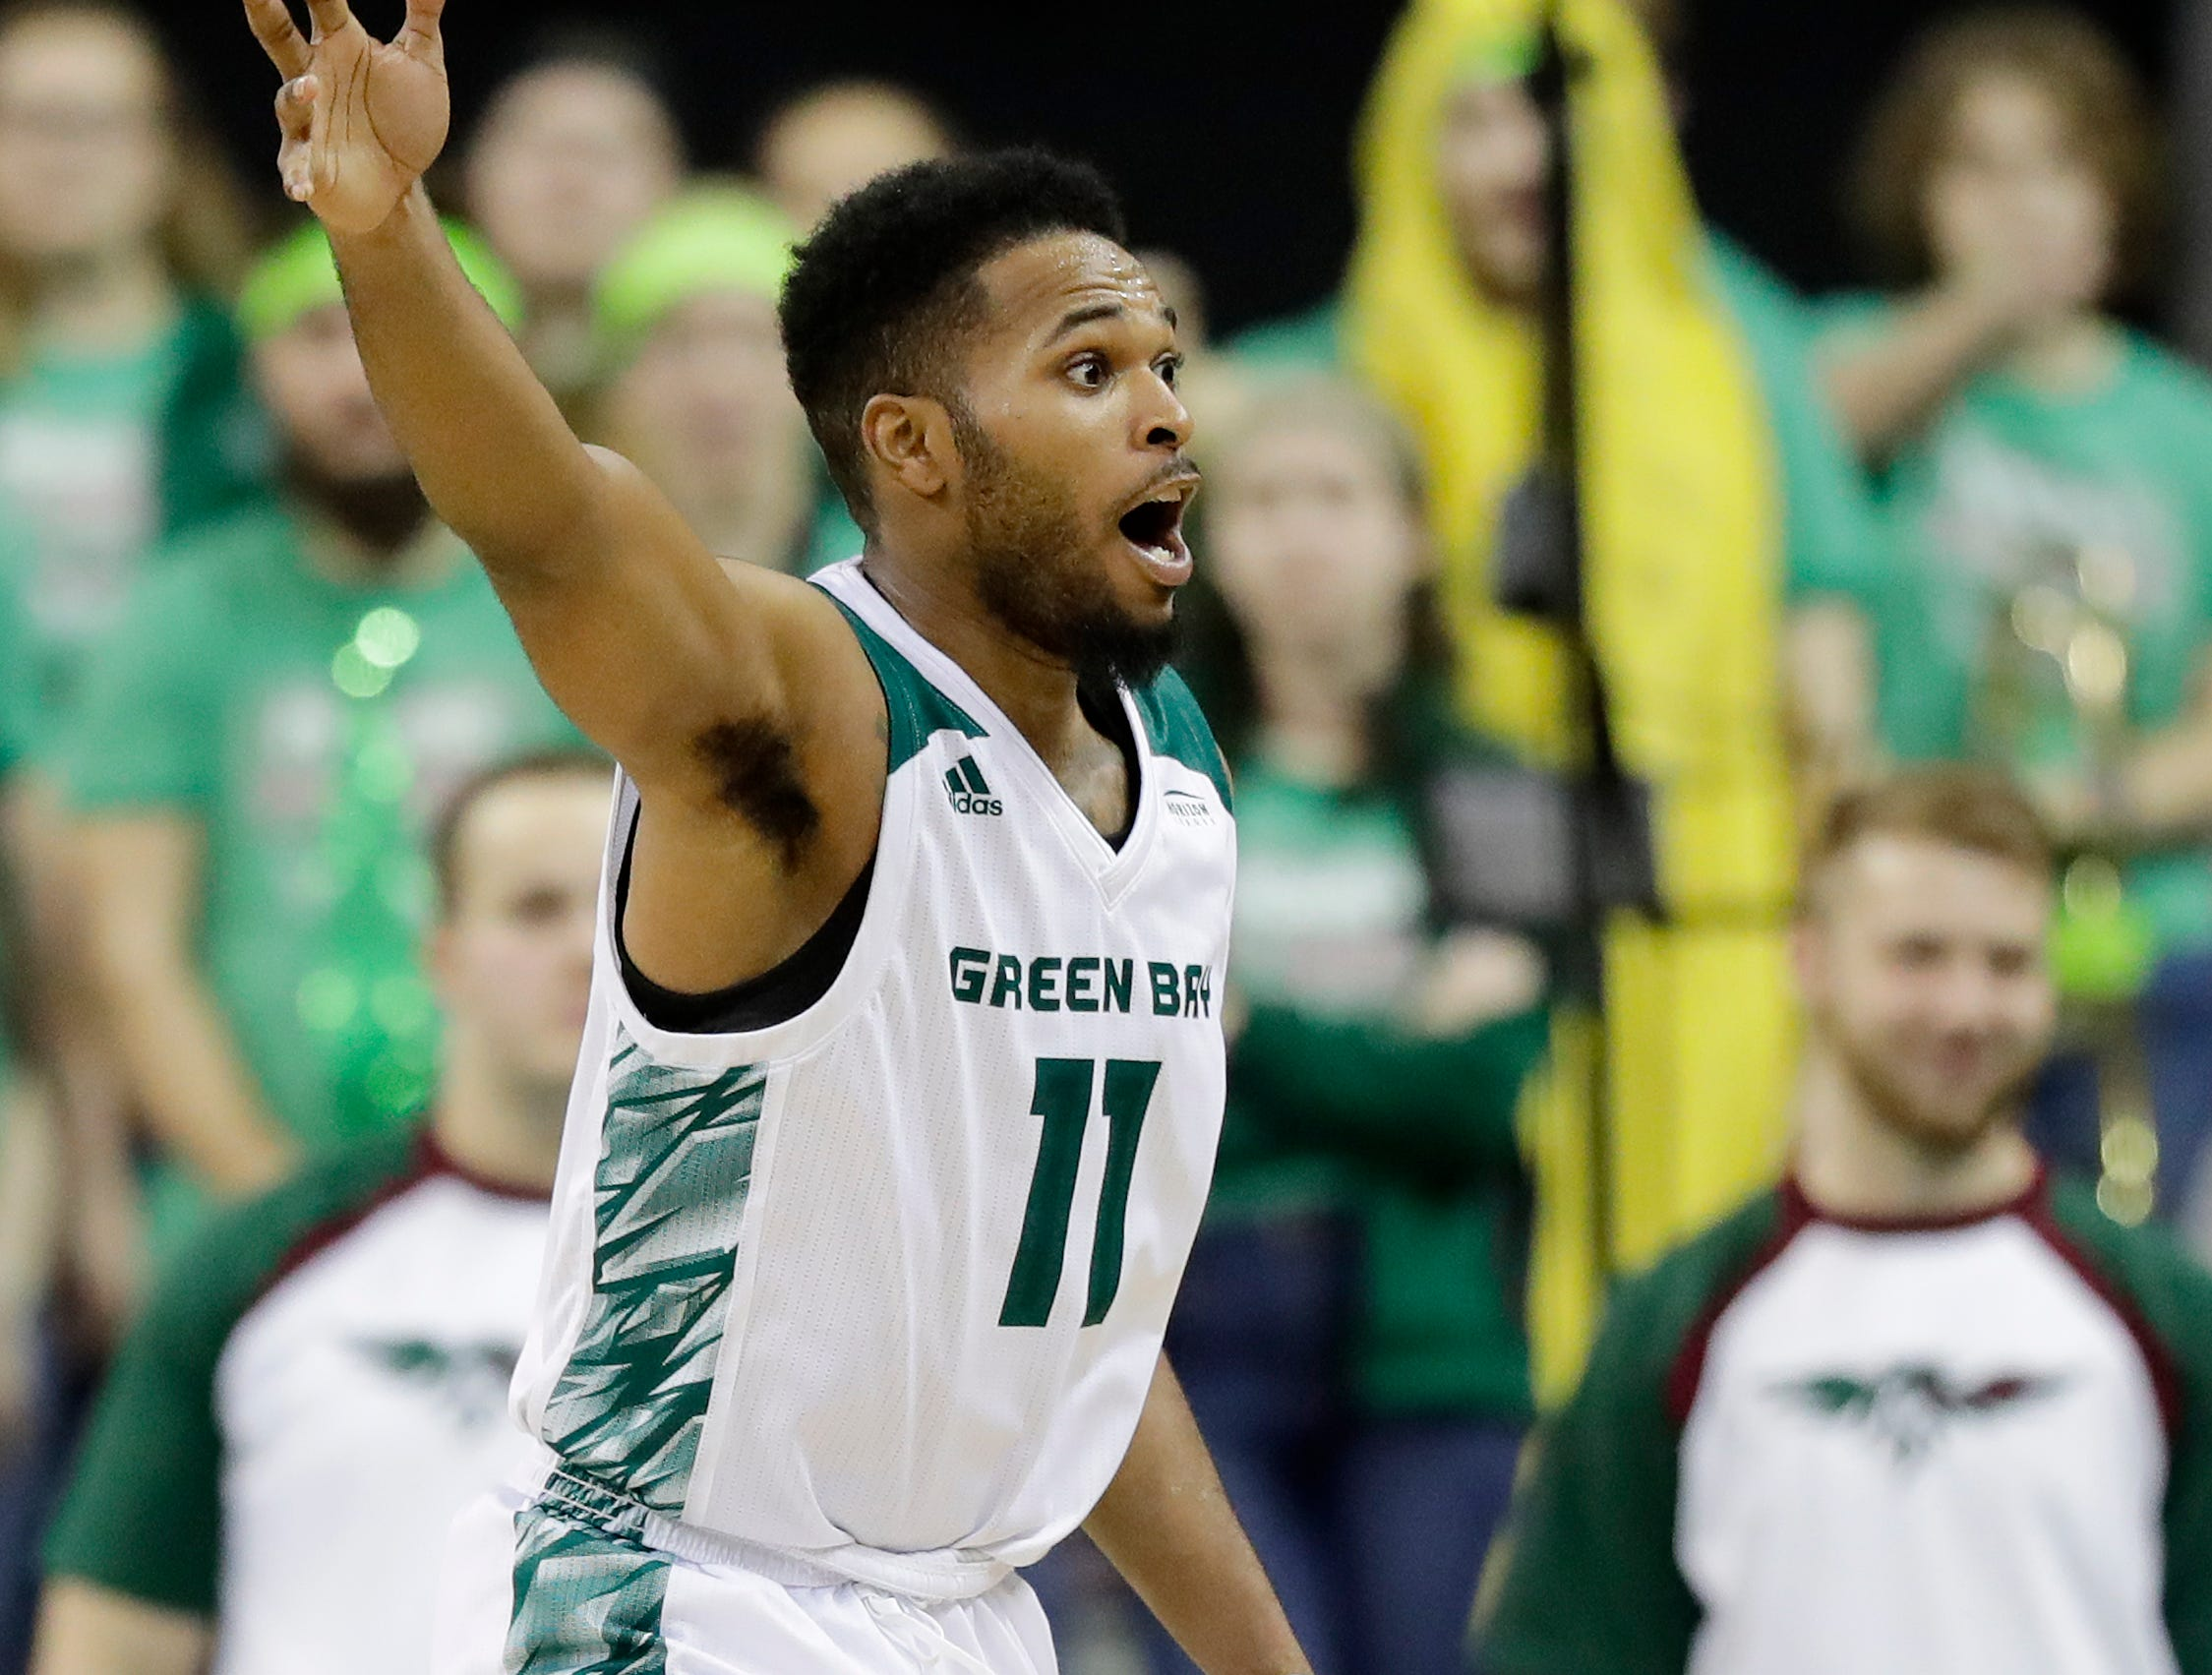 Green Bay Phoenix guard JayQuan McCloud (11) reacts in a NCAA basketball game against the Belmont Bruins at the Resch Center on Saturday, December 1, 2018 in Ashwaubenon, Wis.